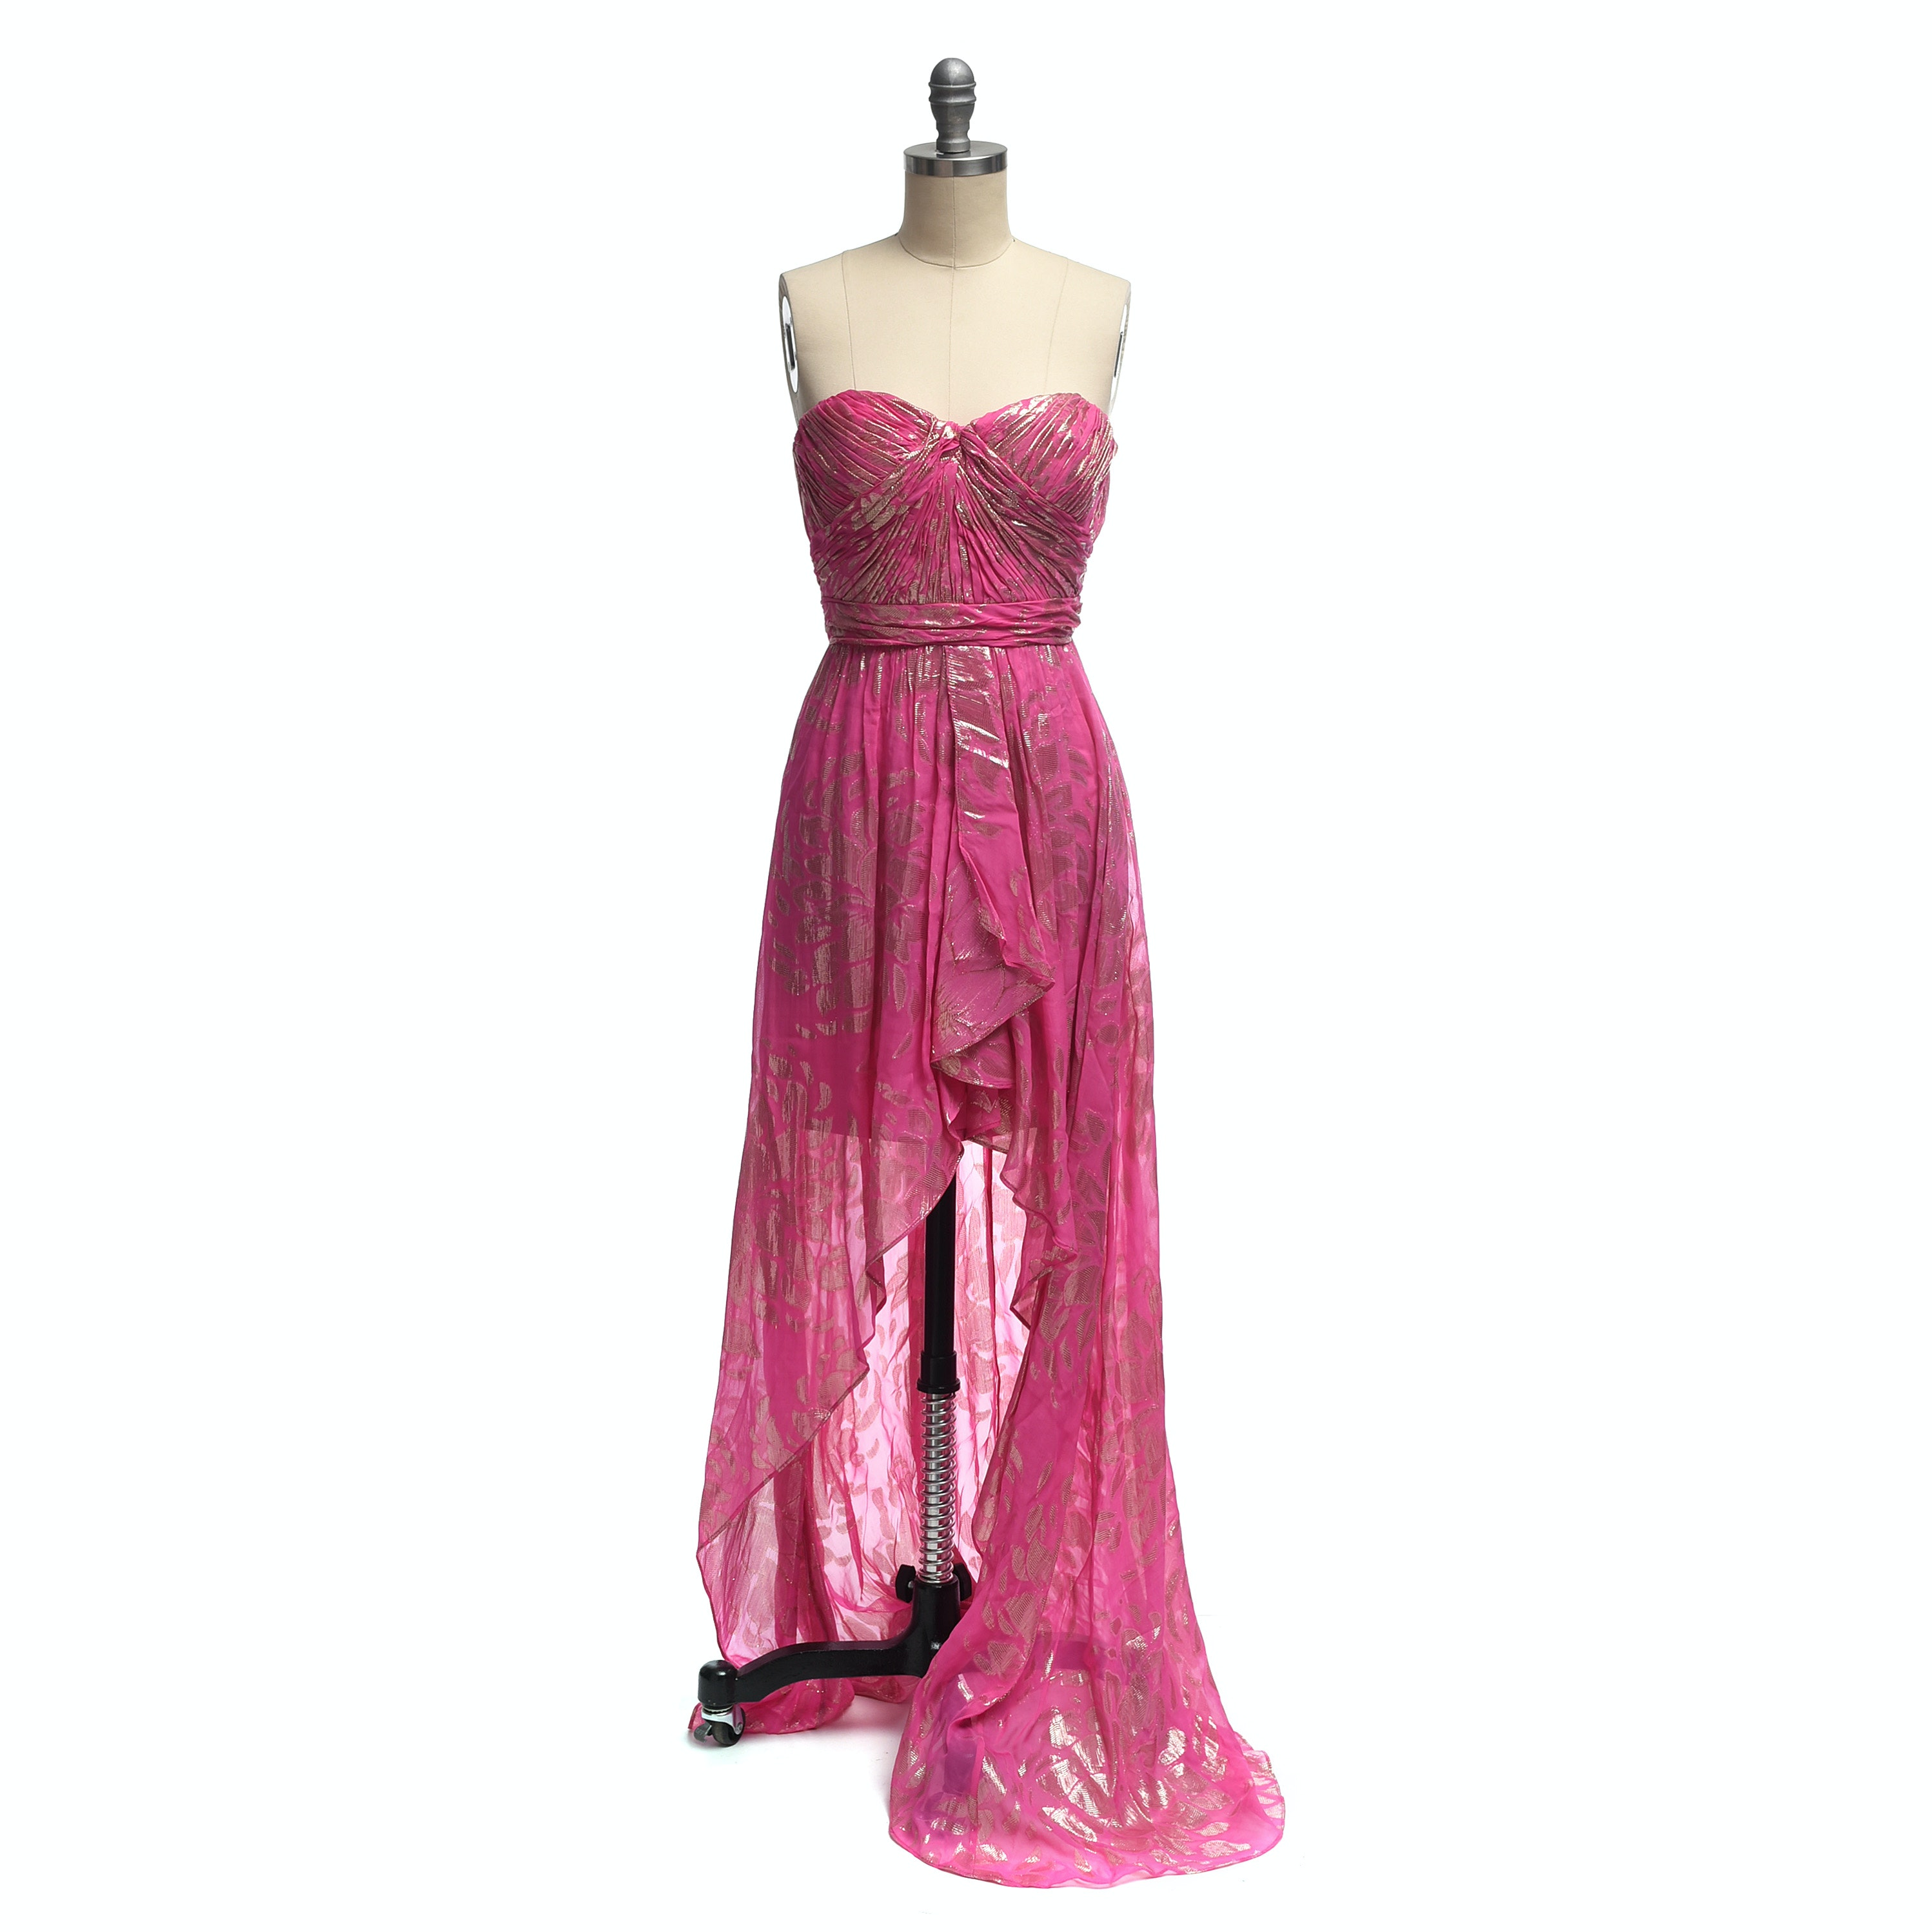 AQUA Dresses Strapless Pink and Gold Gown with Asymmetrical Hemline